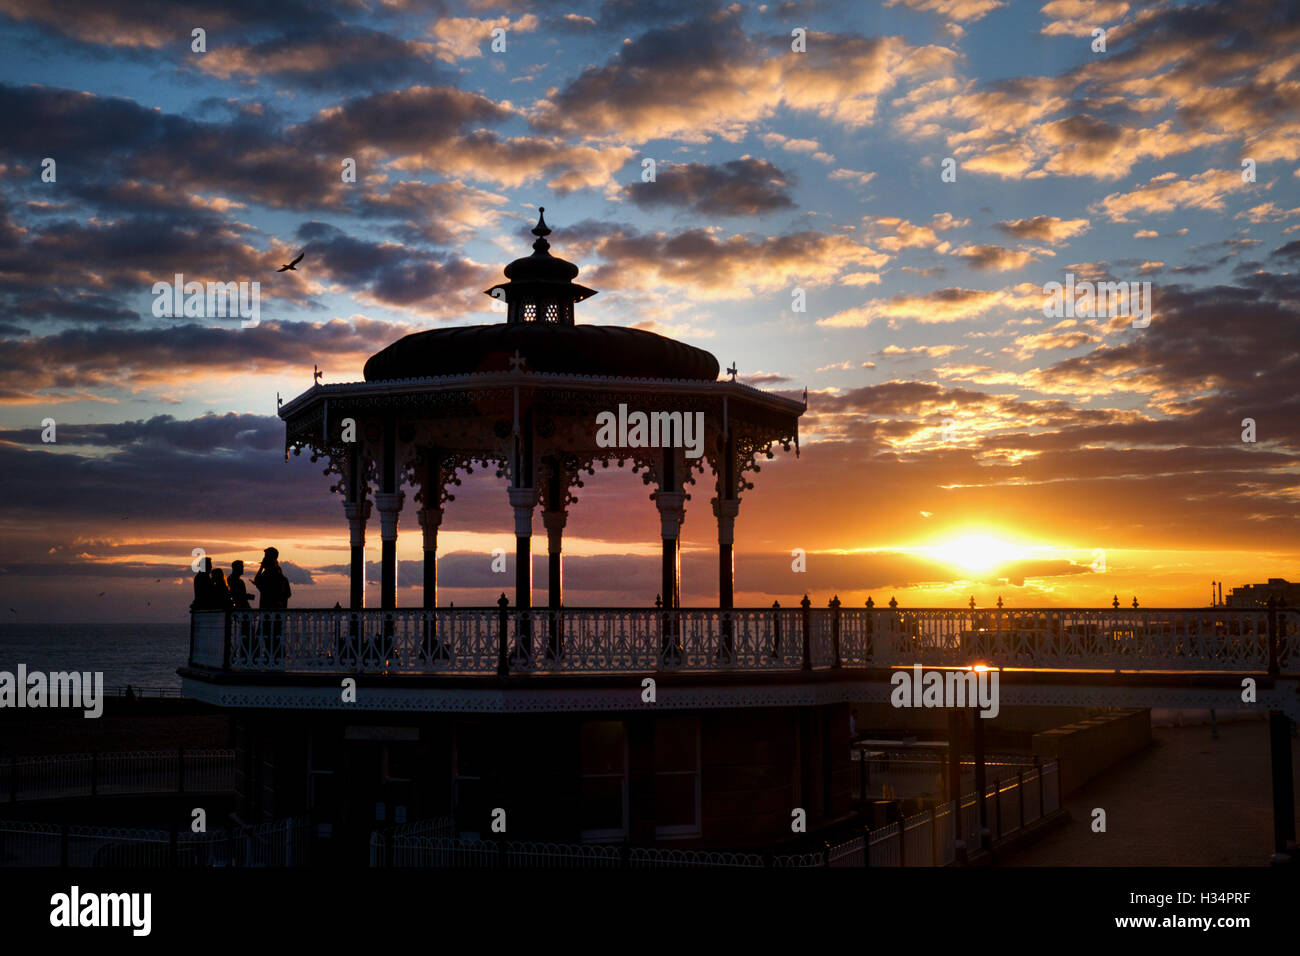 4 people on a beautiful bandstand the people are silhouetted by a yellow setting sun, and the blue and red sky. - Stock Image